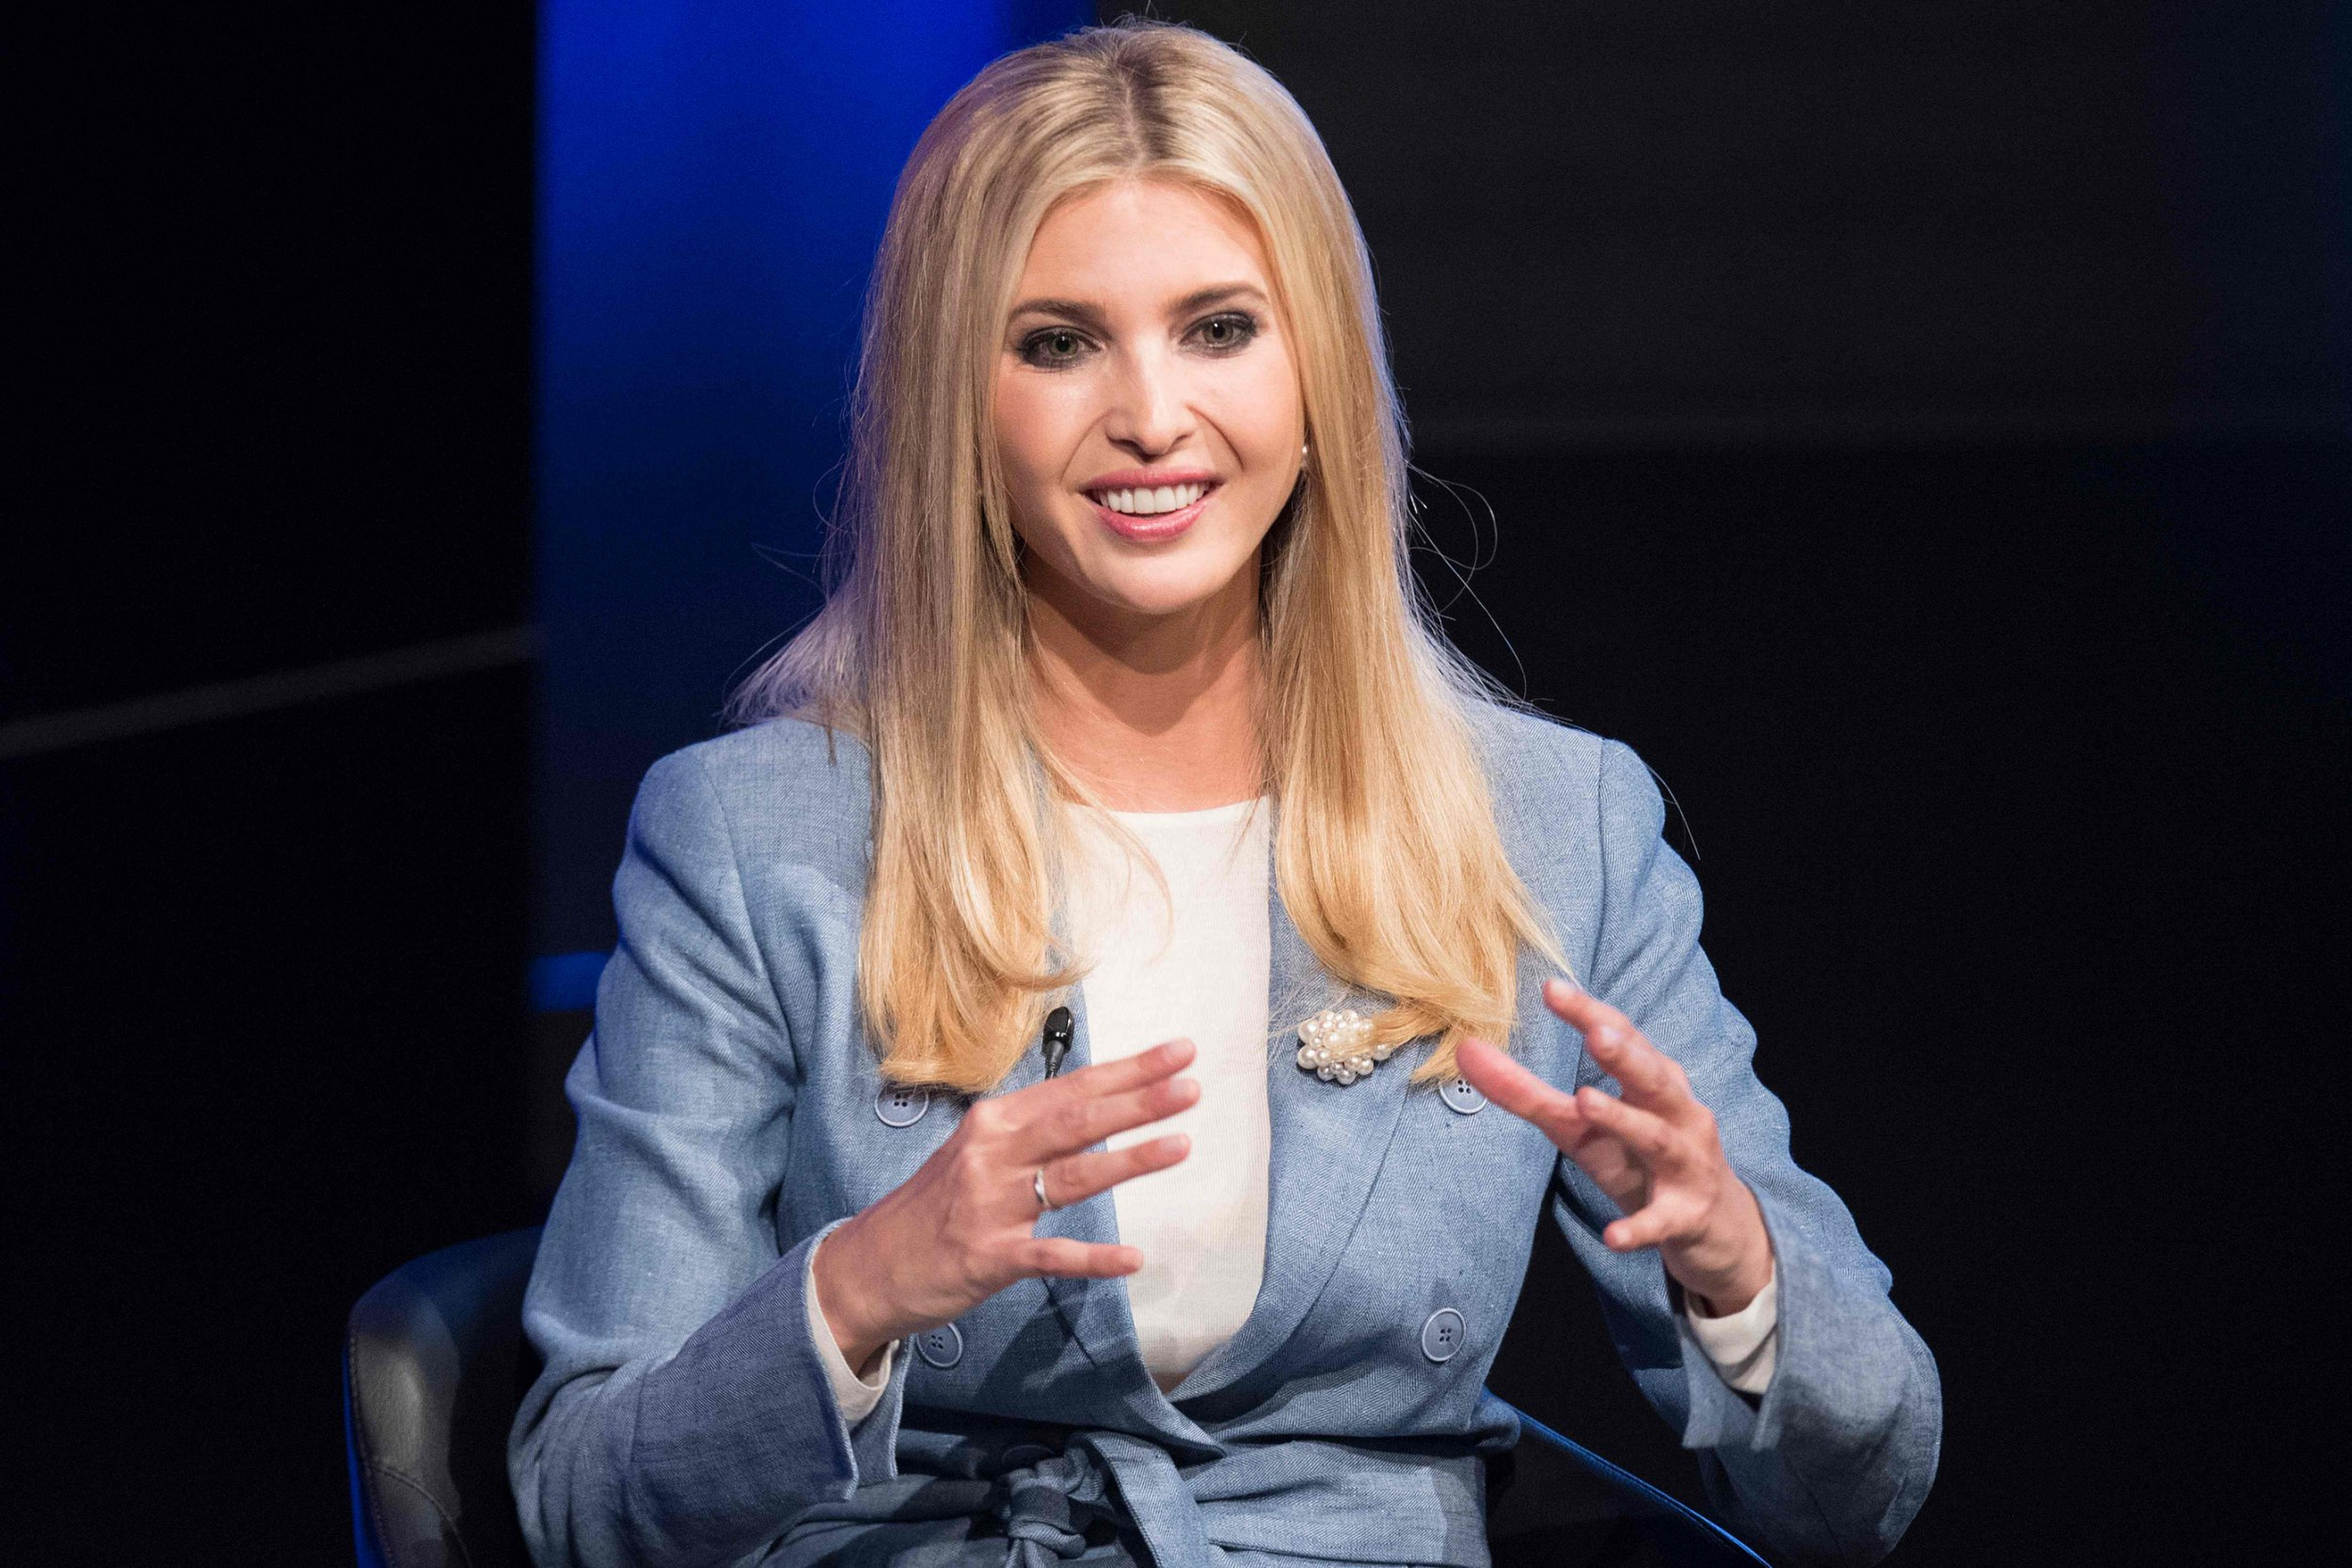 Ivanka Trump says family separations were a 'low point' of her dad's presidency